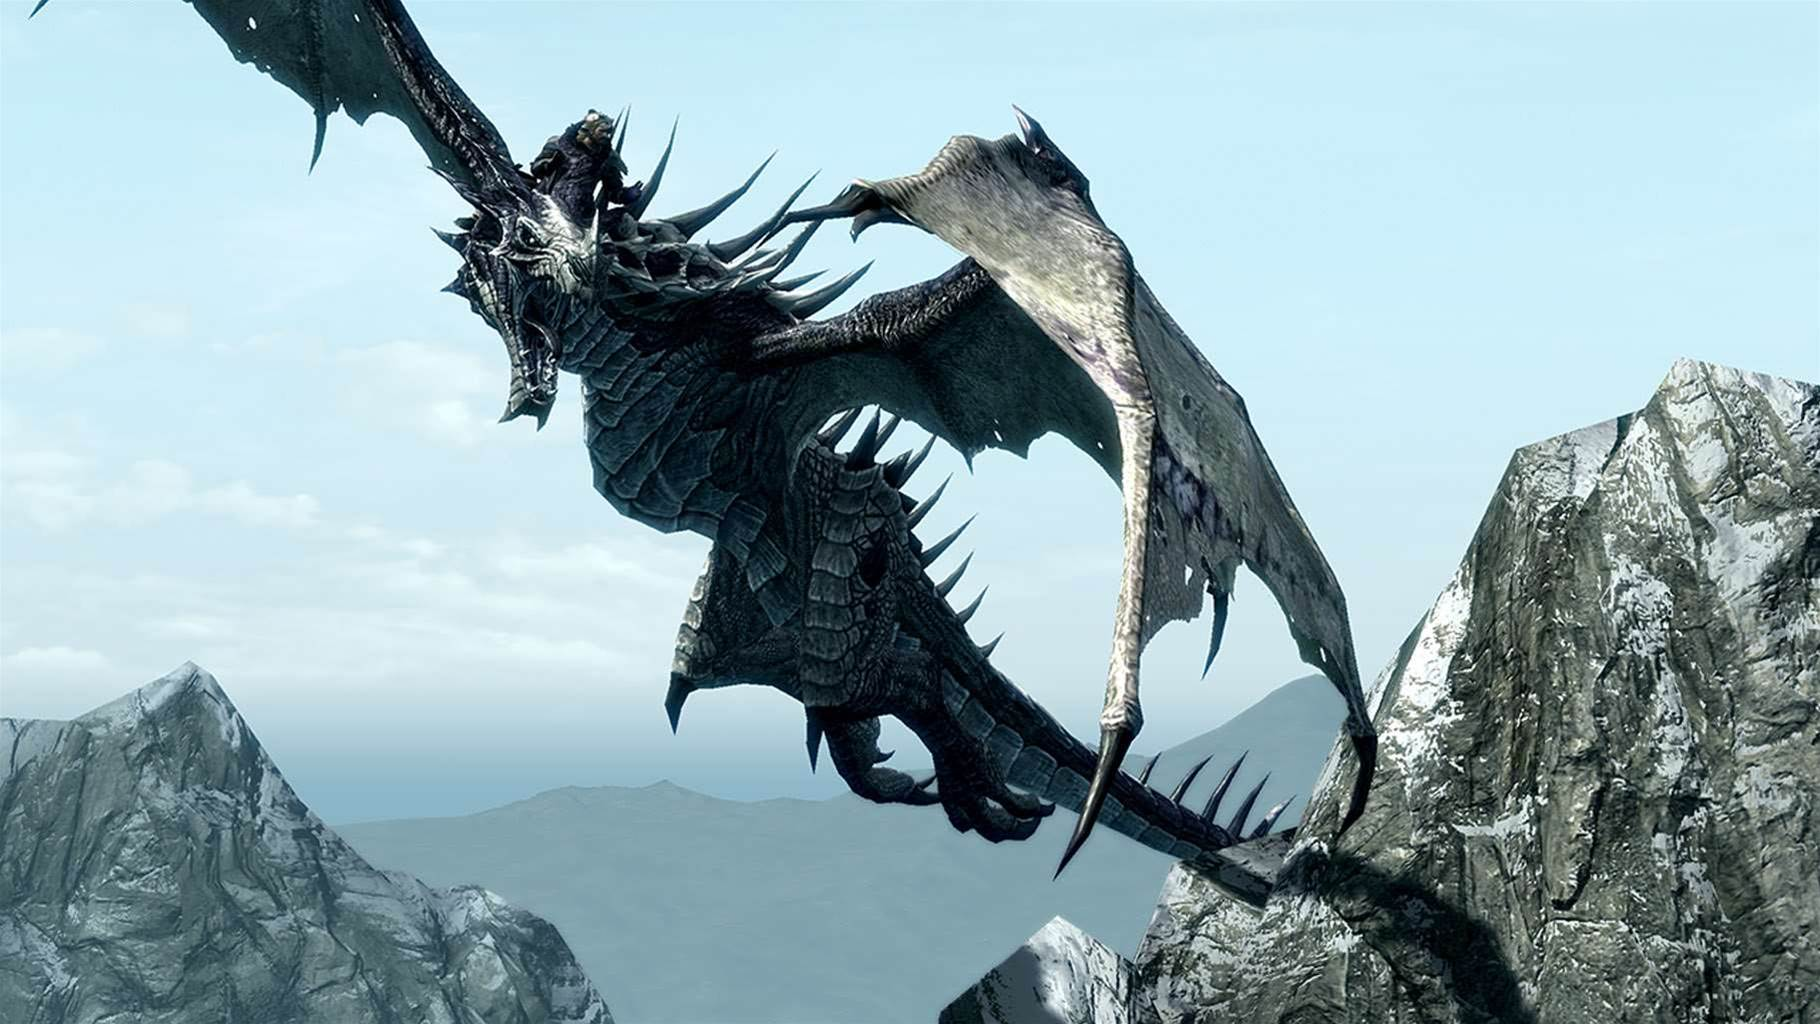 New screens from Dragonborn, the next Skyrim expansion